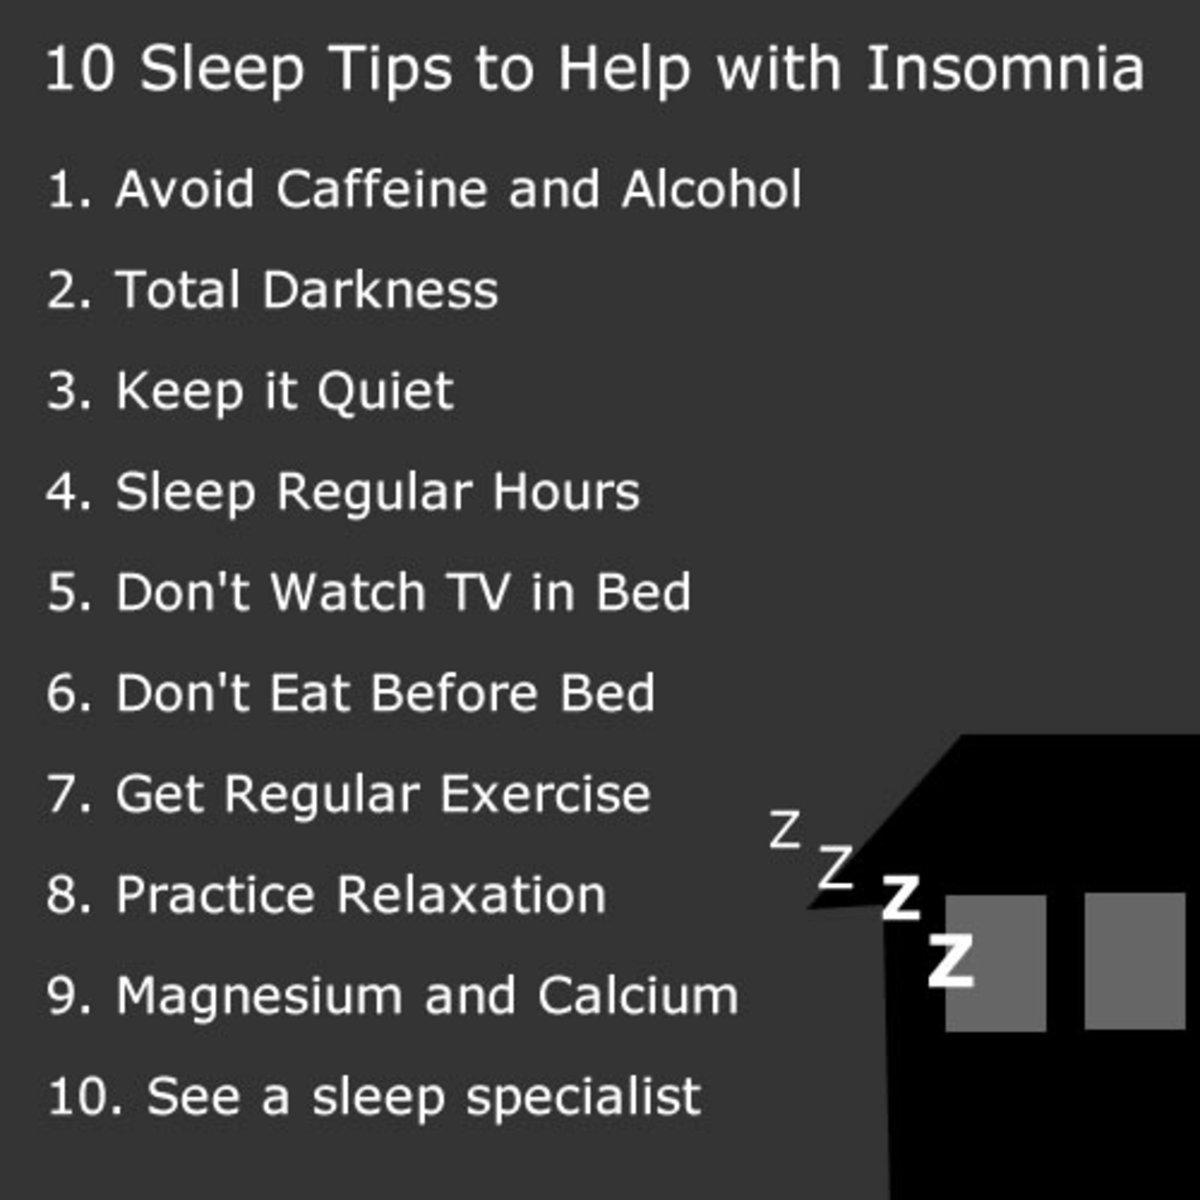 10 Sleep Tips to Help with Insomnia